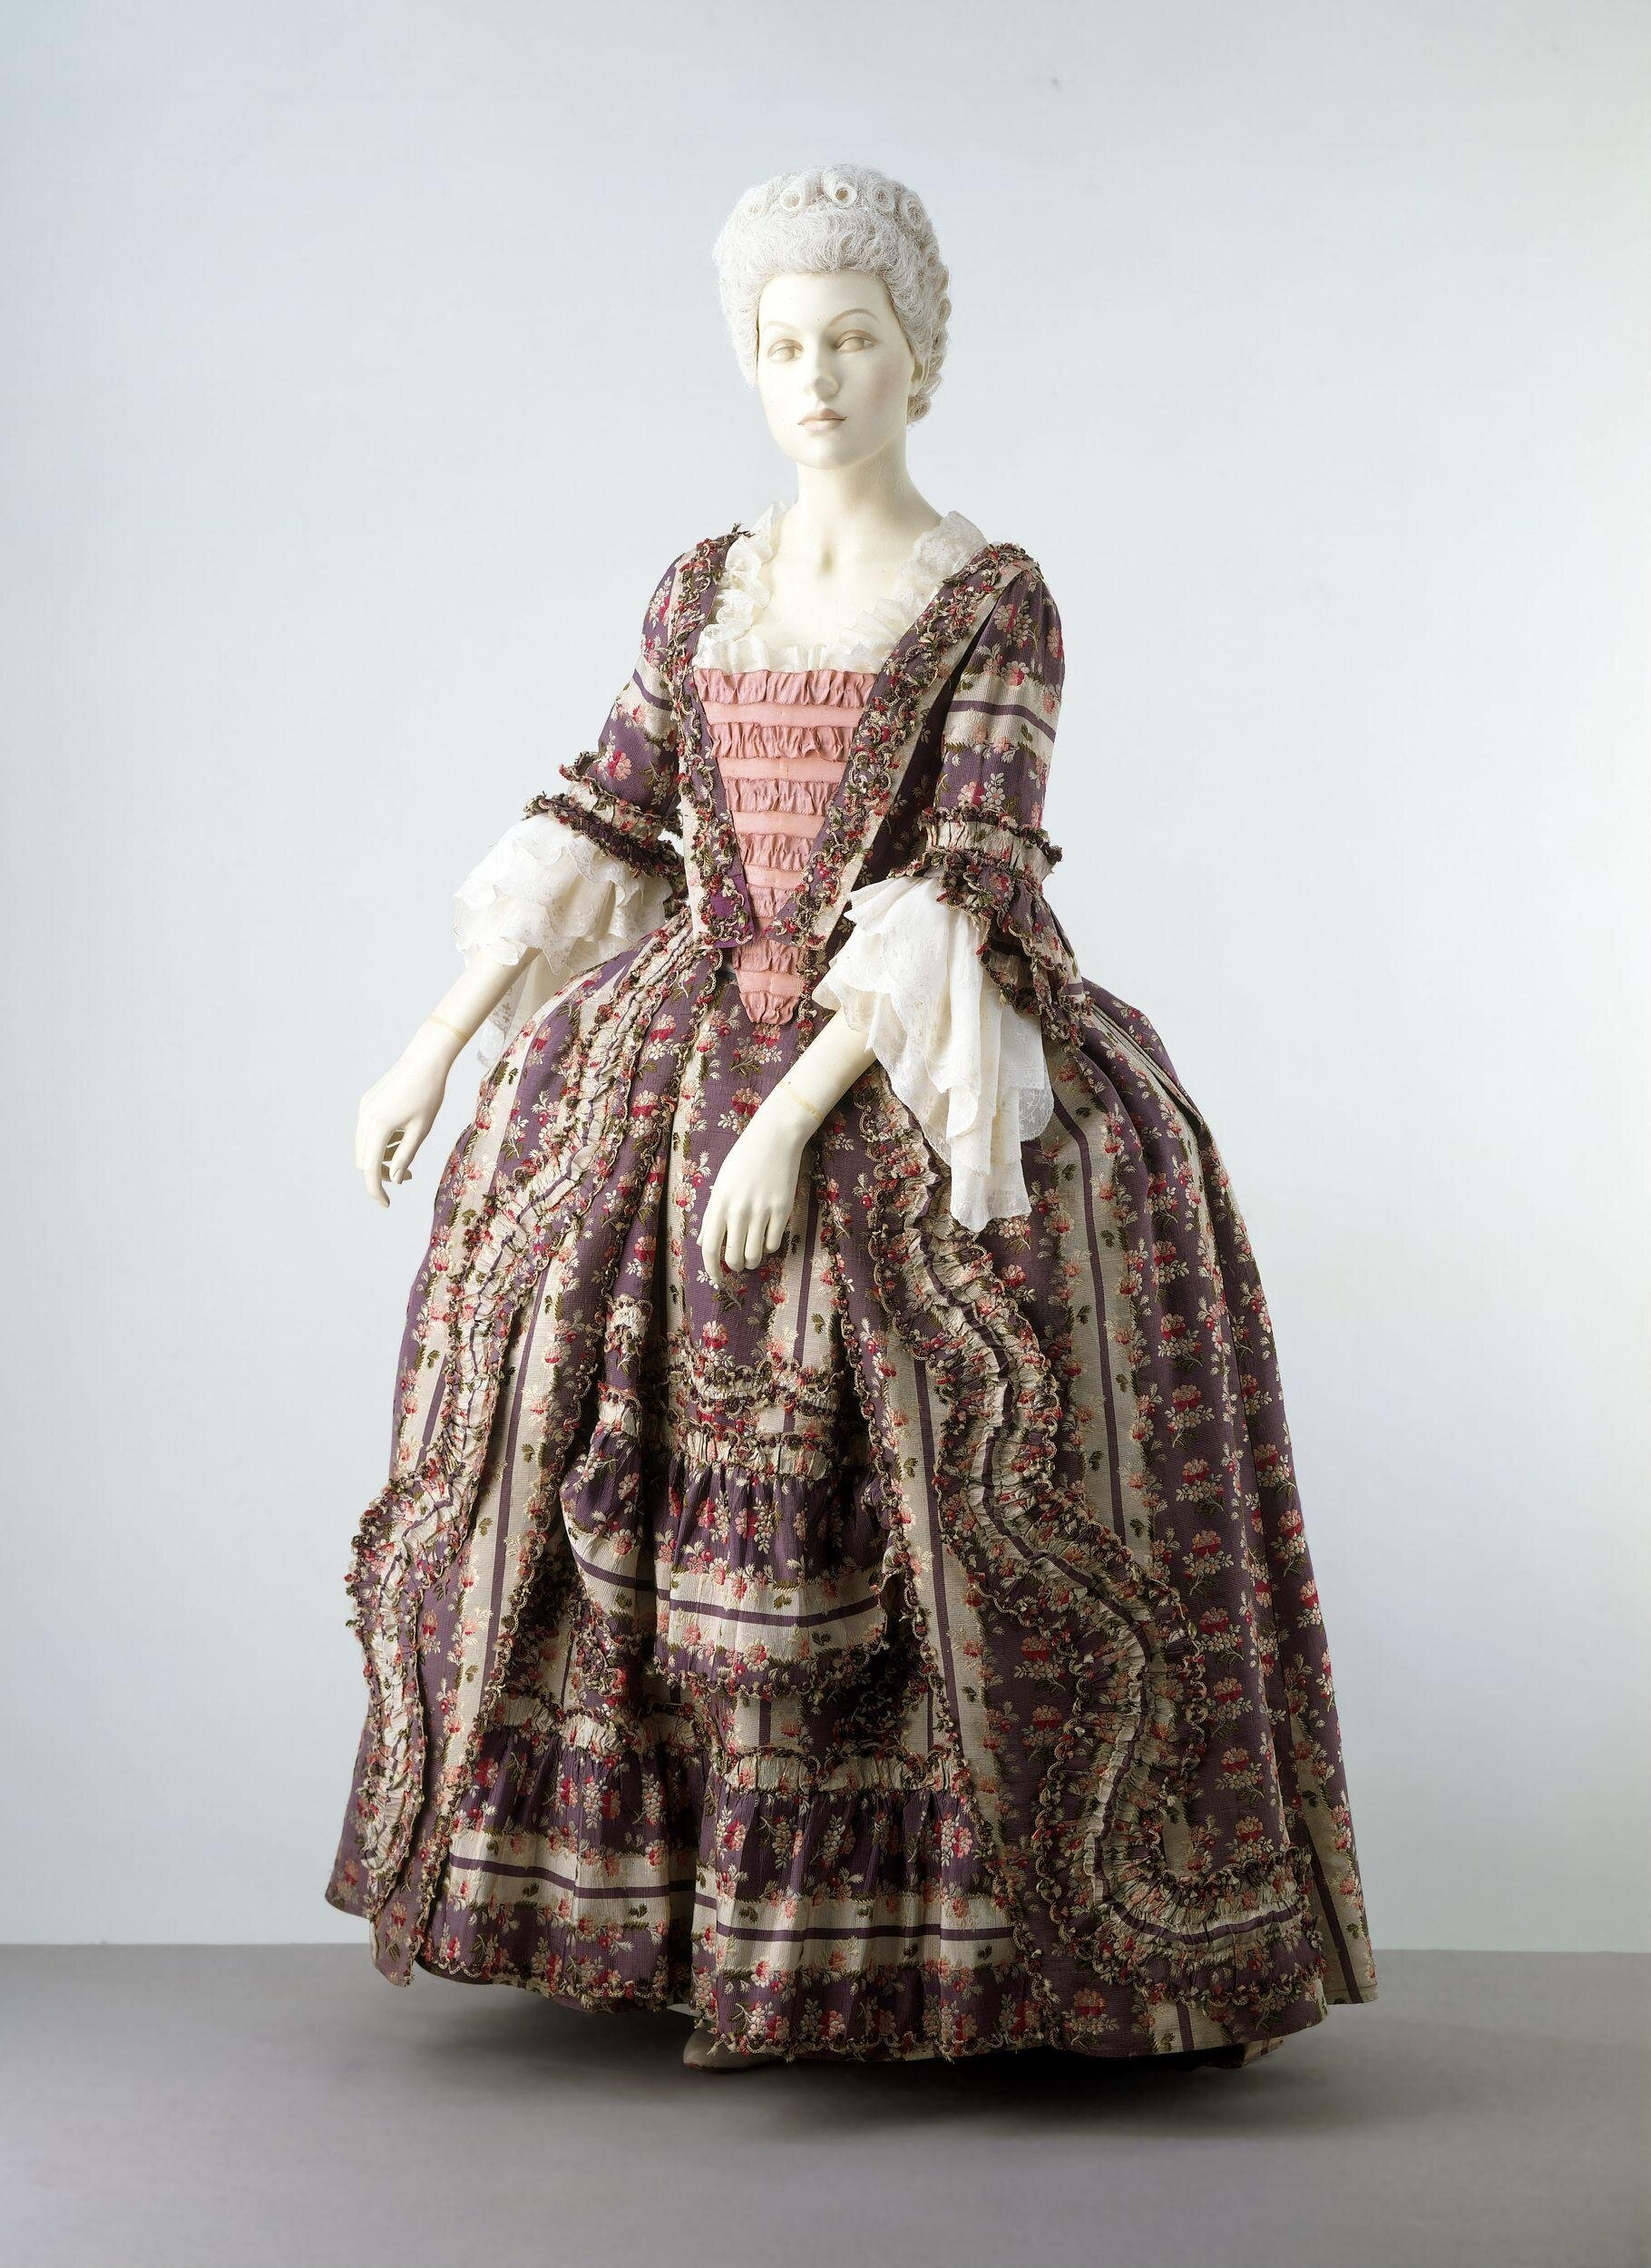 A woman's sack and petticoat, English, 1770-75; purple and white striped silk with flowers, Spitalfields or French, 1770-75, Victoria and Albert Museum T.161&A-1961